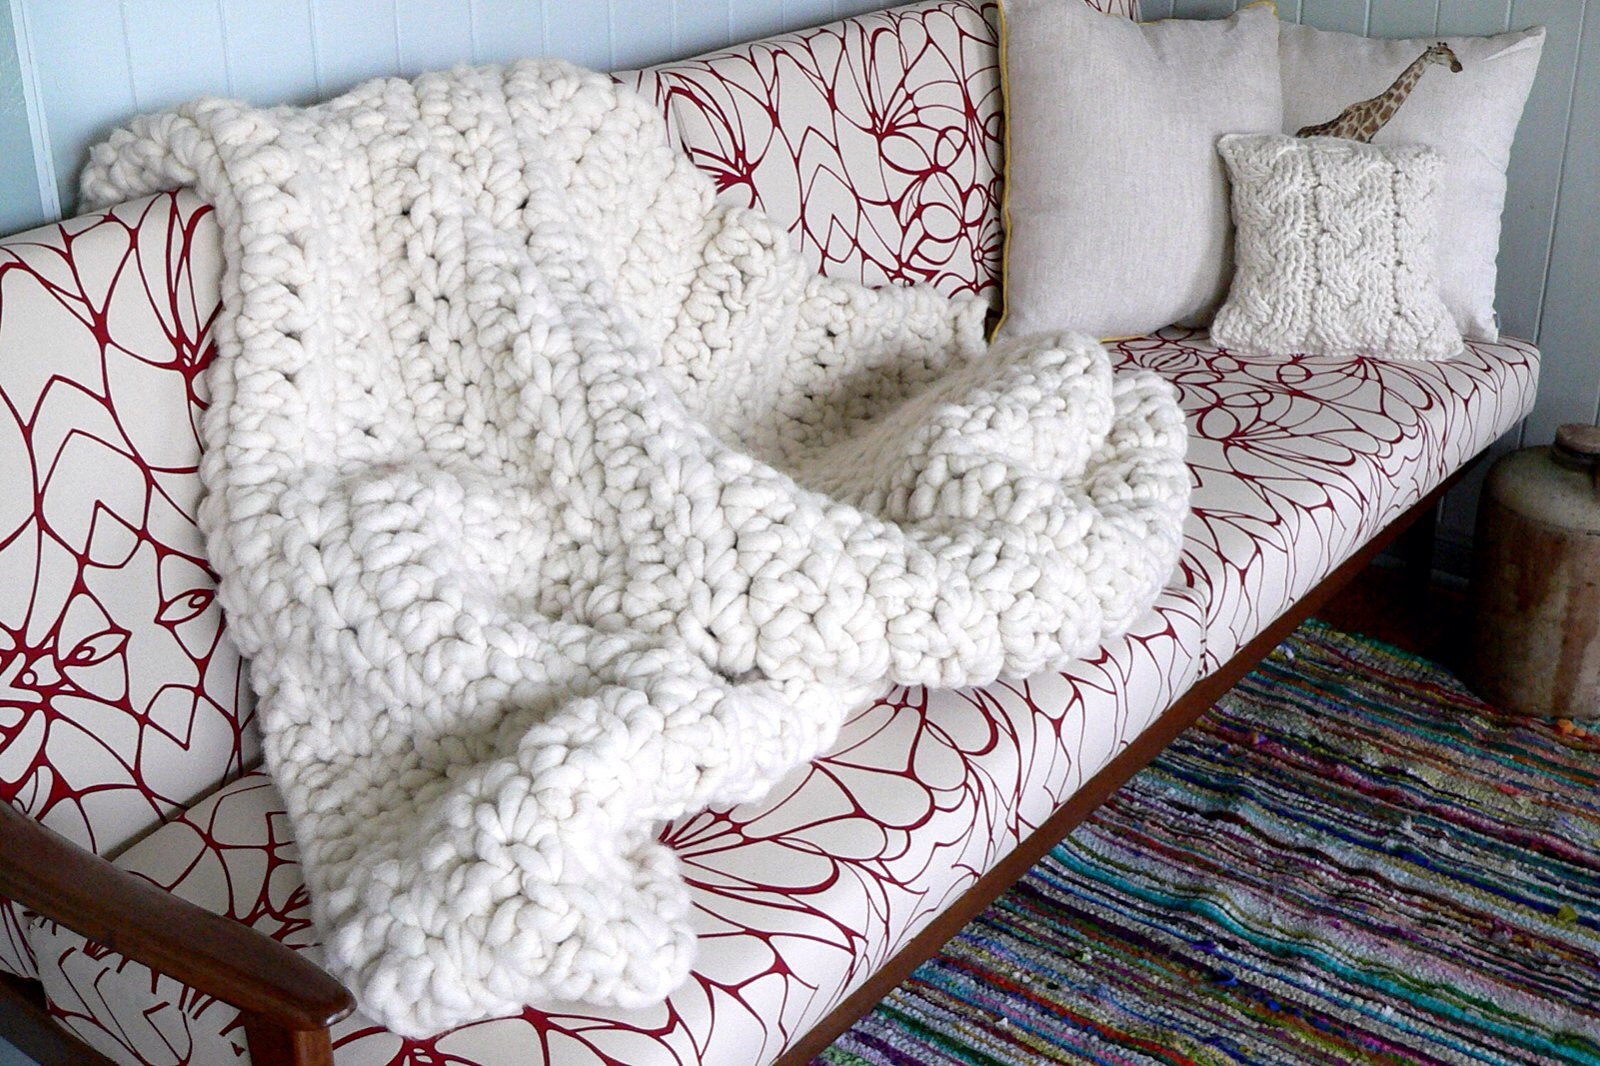 Bulky Yarn Crochet Afghan Patterns Awesome Free Crochet Afghan Patterns for Bulky Yarn Dancox for Of Wonderful 46 Models Bulky Yarn Crochet Afghan Patterns